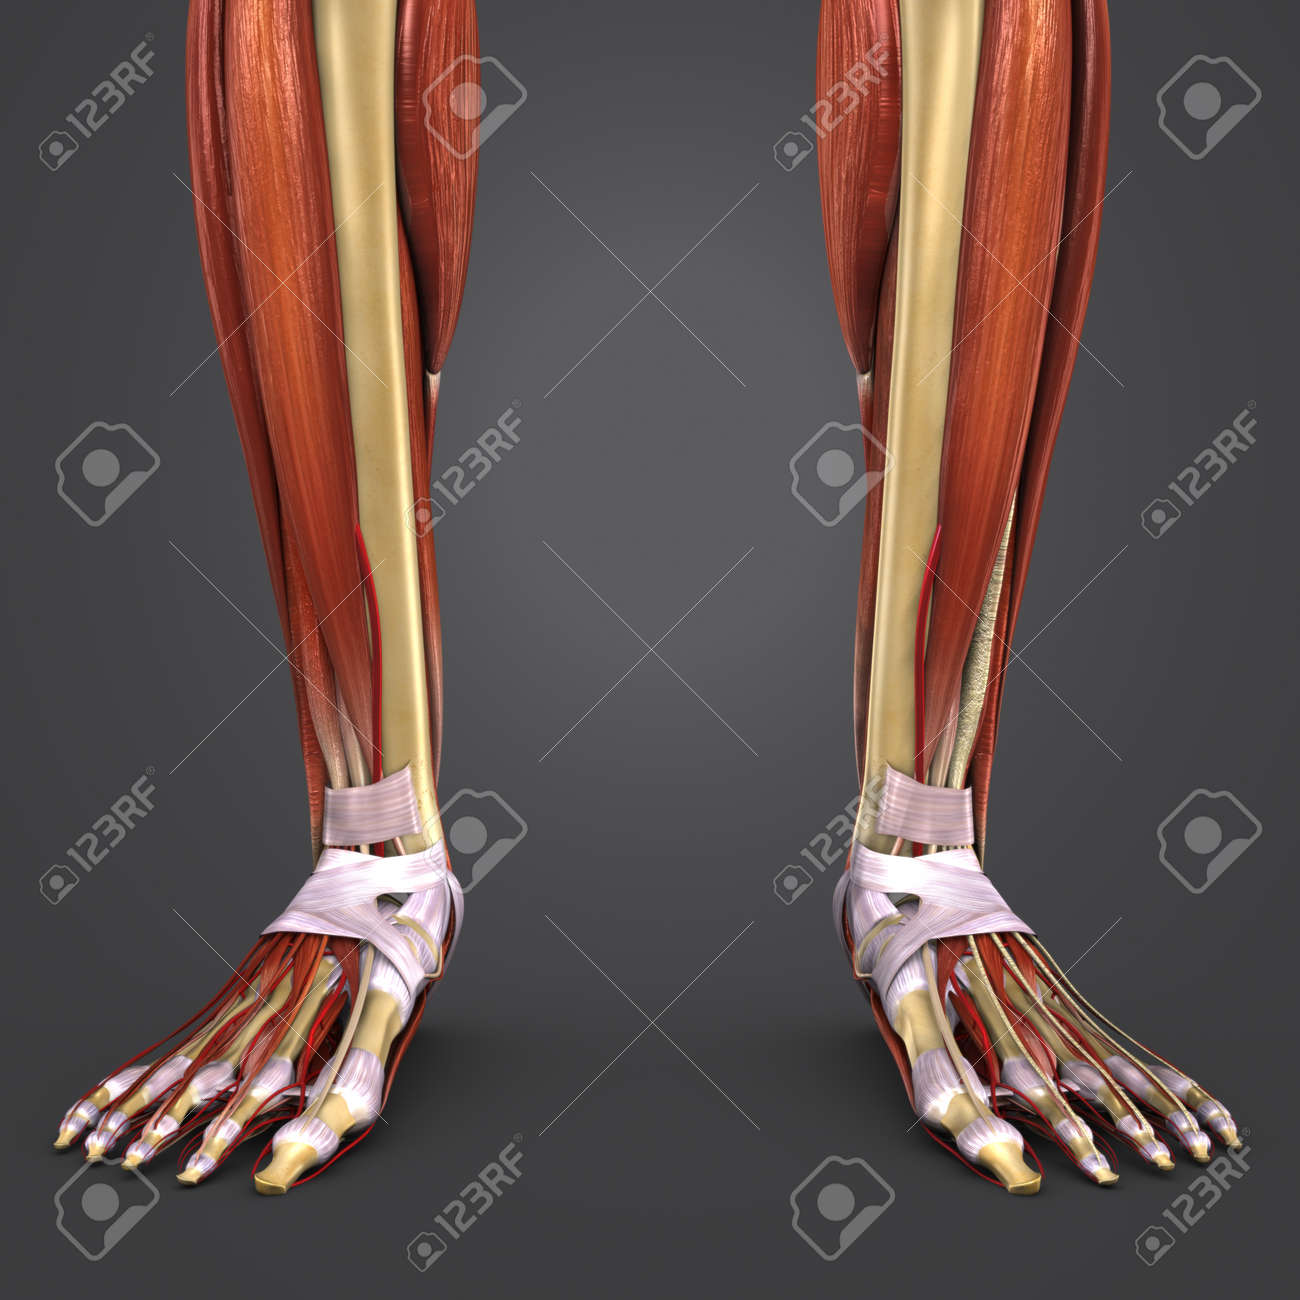 Leg Muscles And Bones Anatomy With Arteries Closeup Stock Photo